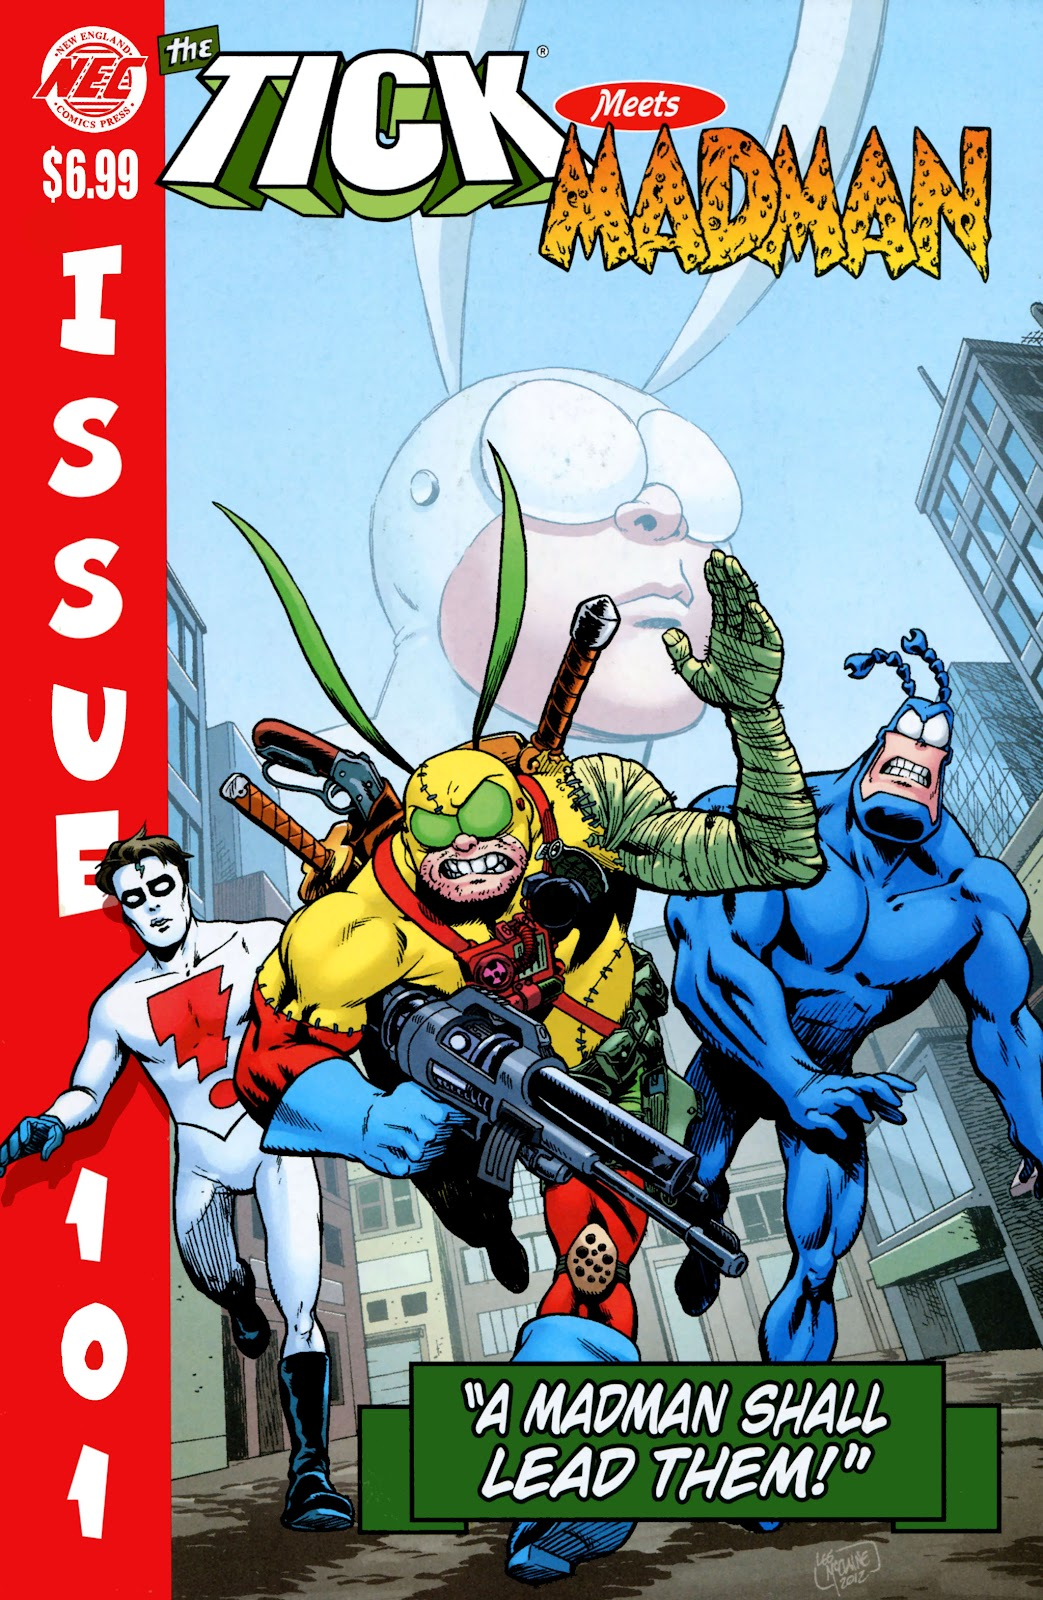 Read online The Tick comic -  Issue #101 - 1